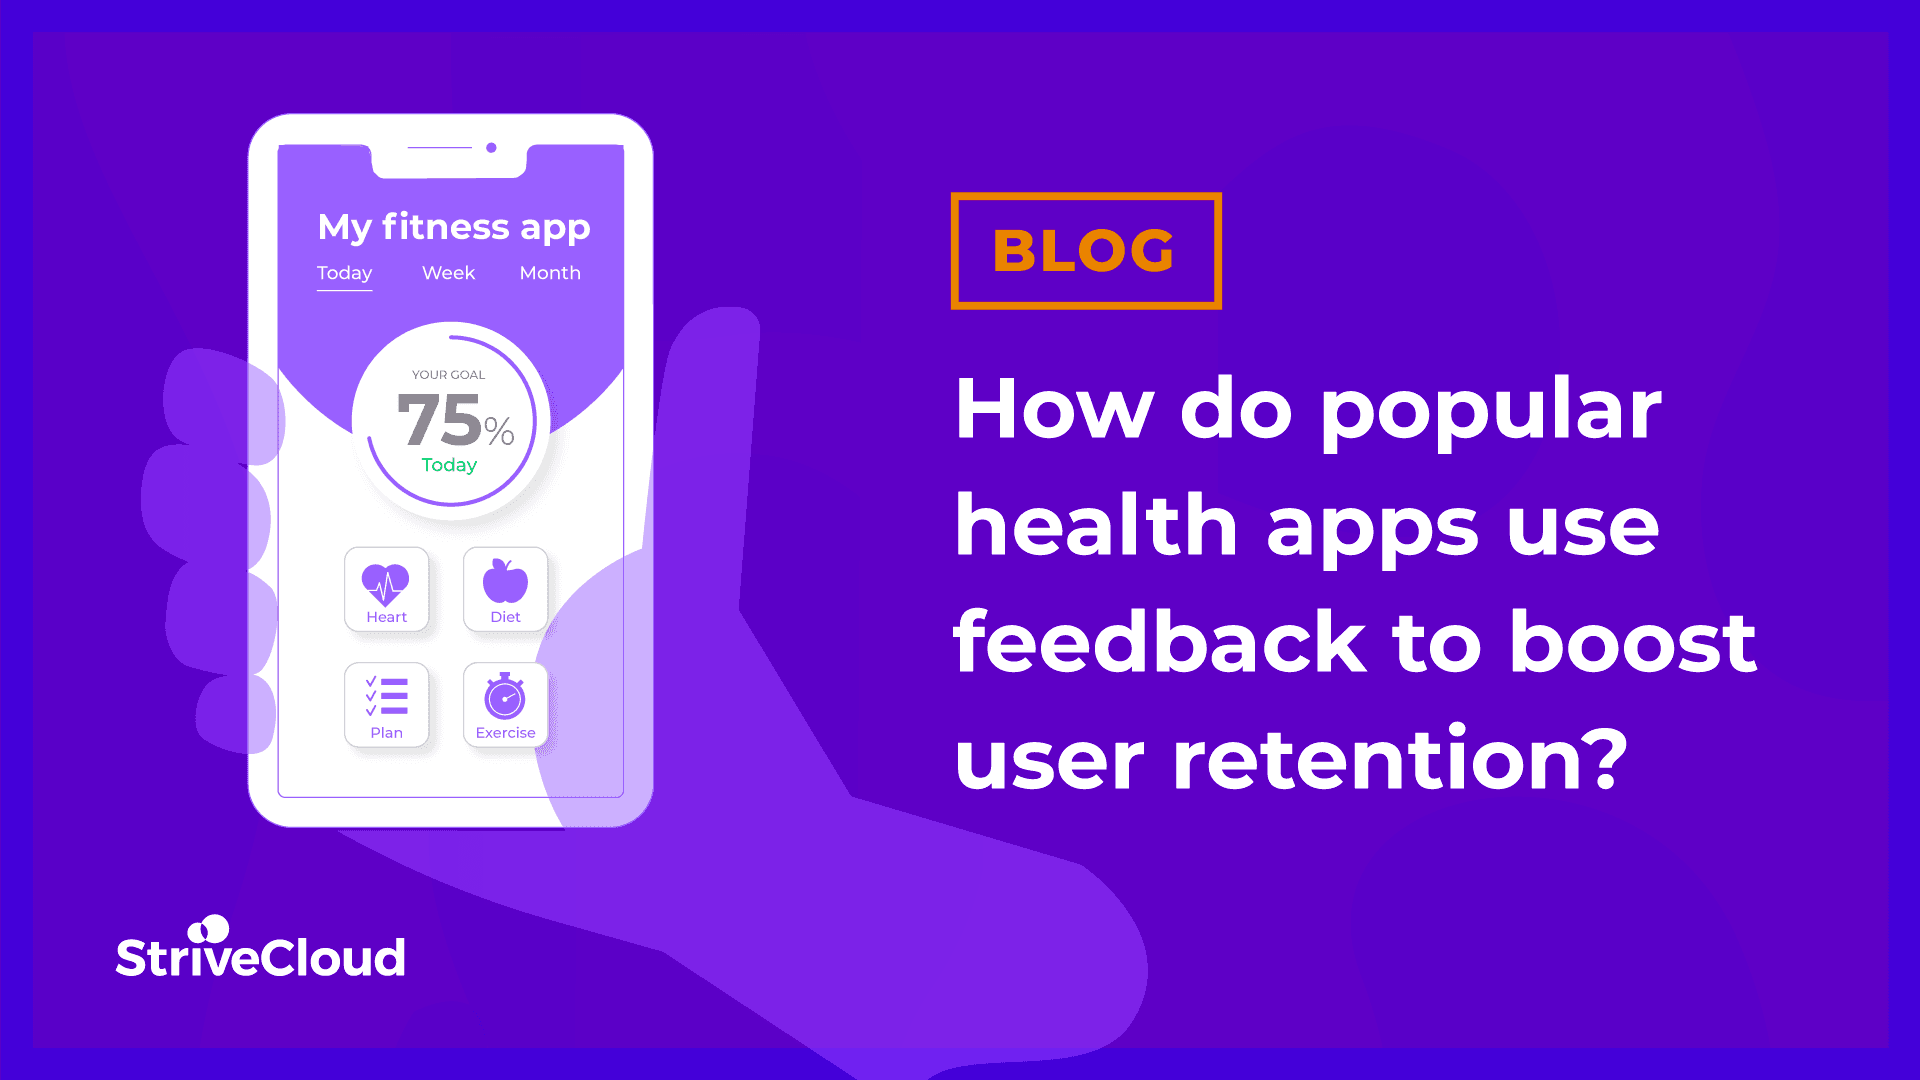 How do popular health apps use feedback to boost user retention?